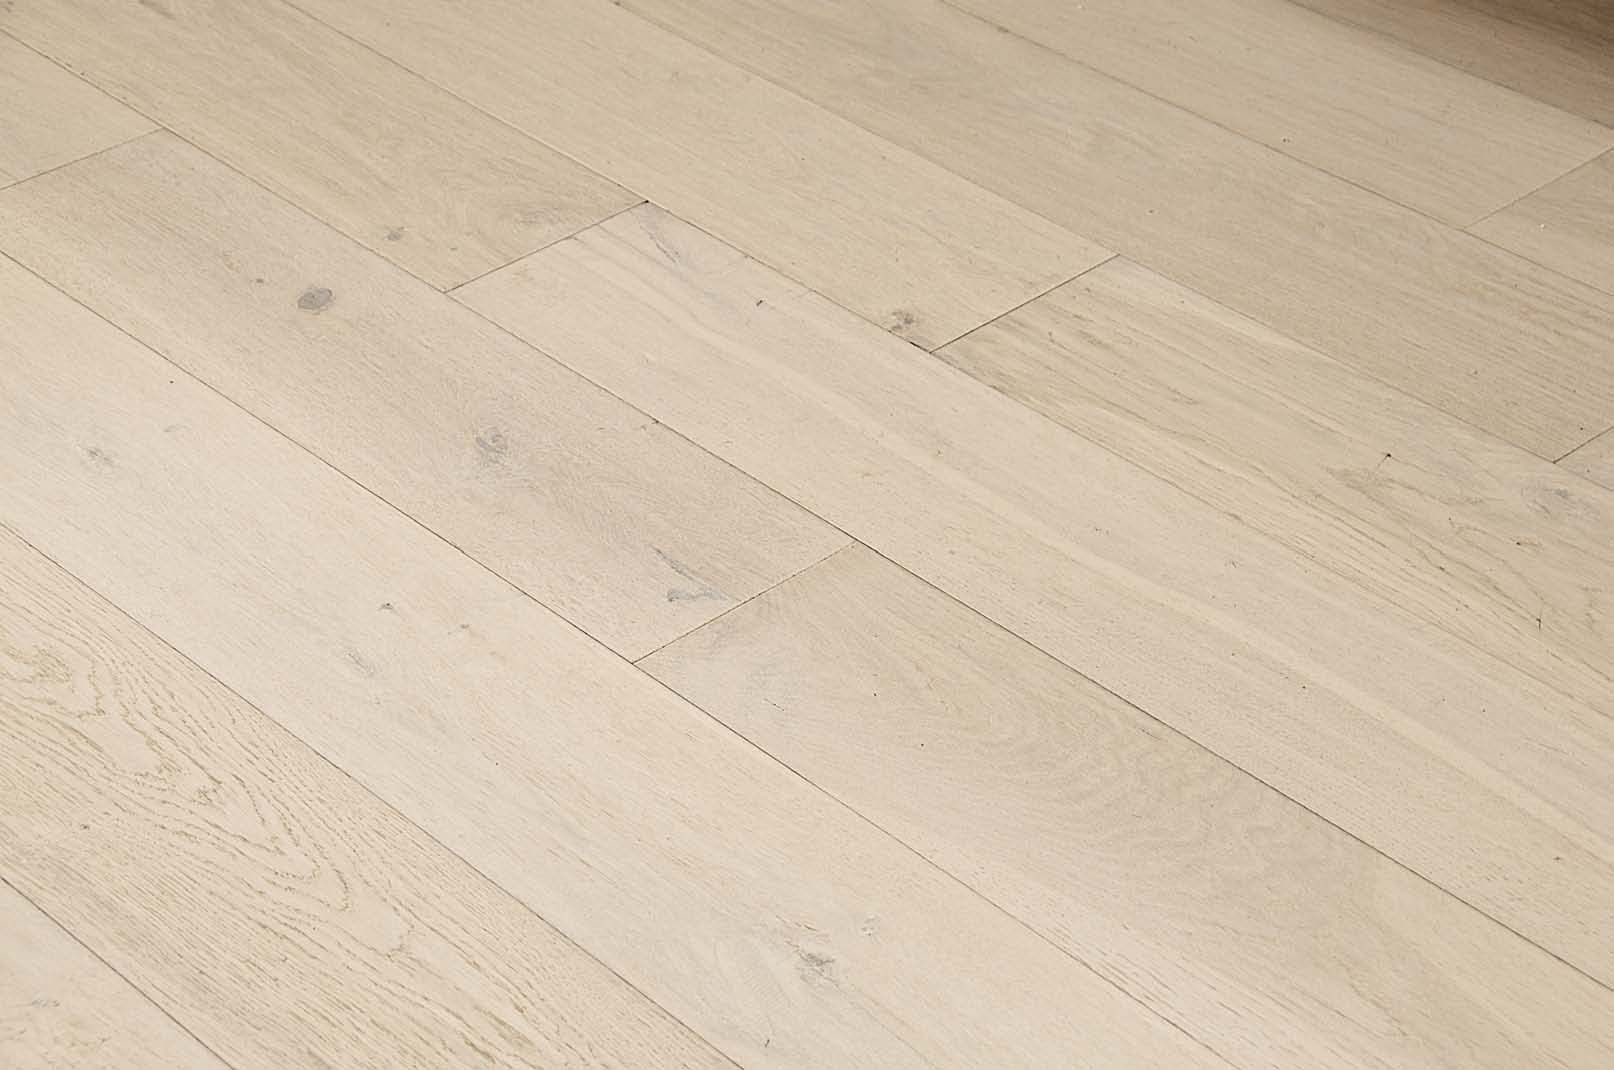 Hand Scraped White Oak Oracle By Vintage Hardwood Flooring #hardwood  #hardwoodflooring #whiteoak #